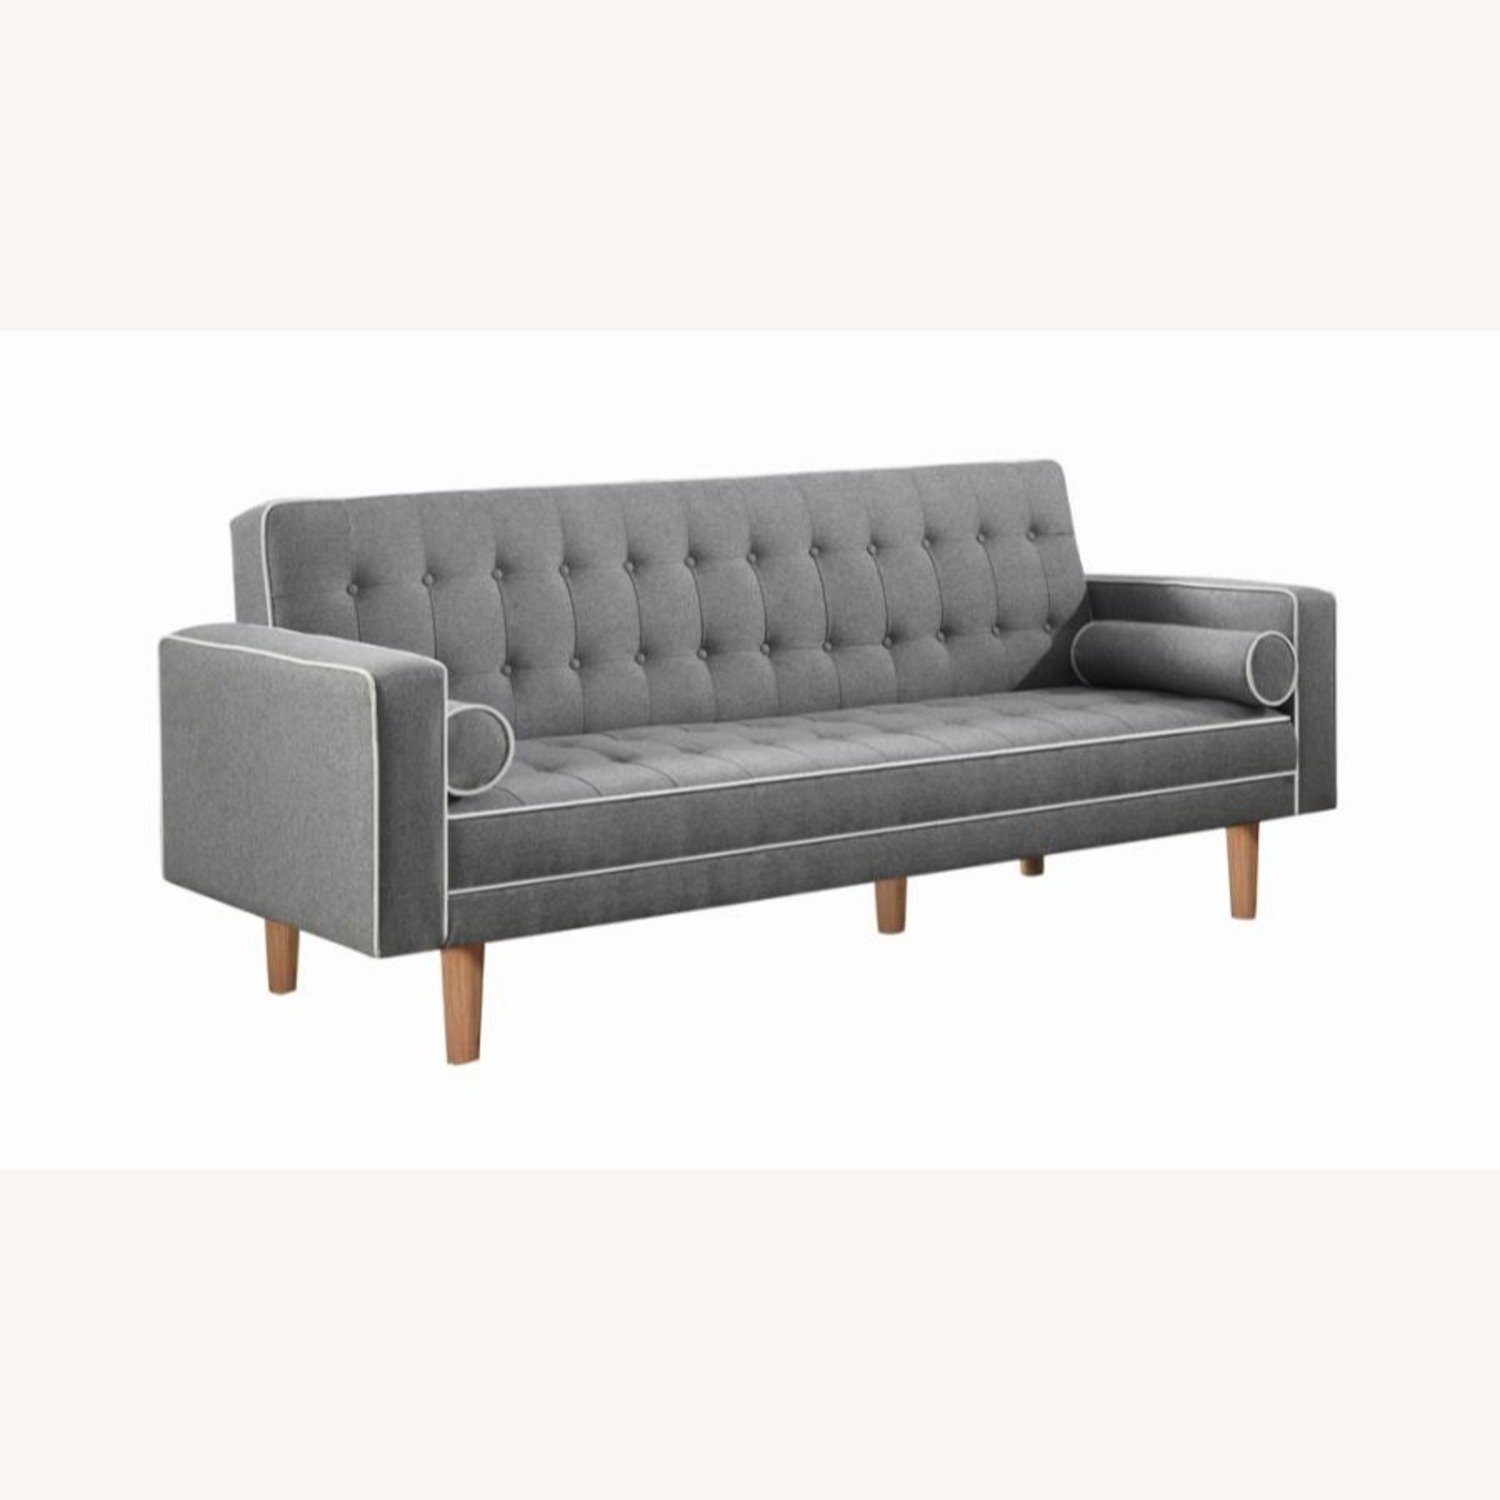 Sofa Bed In Grey Fabric W/ Natural Wood Legs - image-0